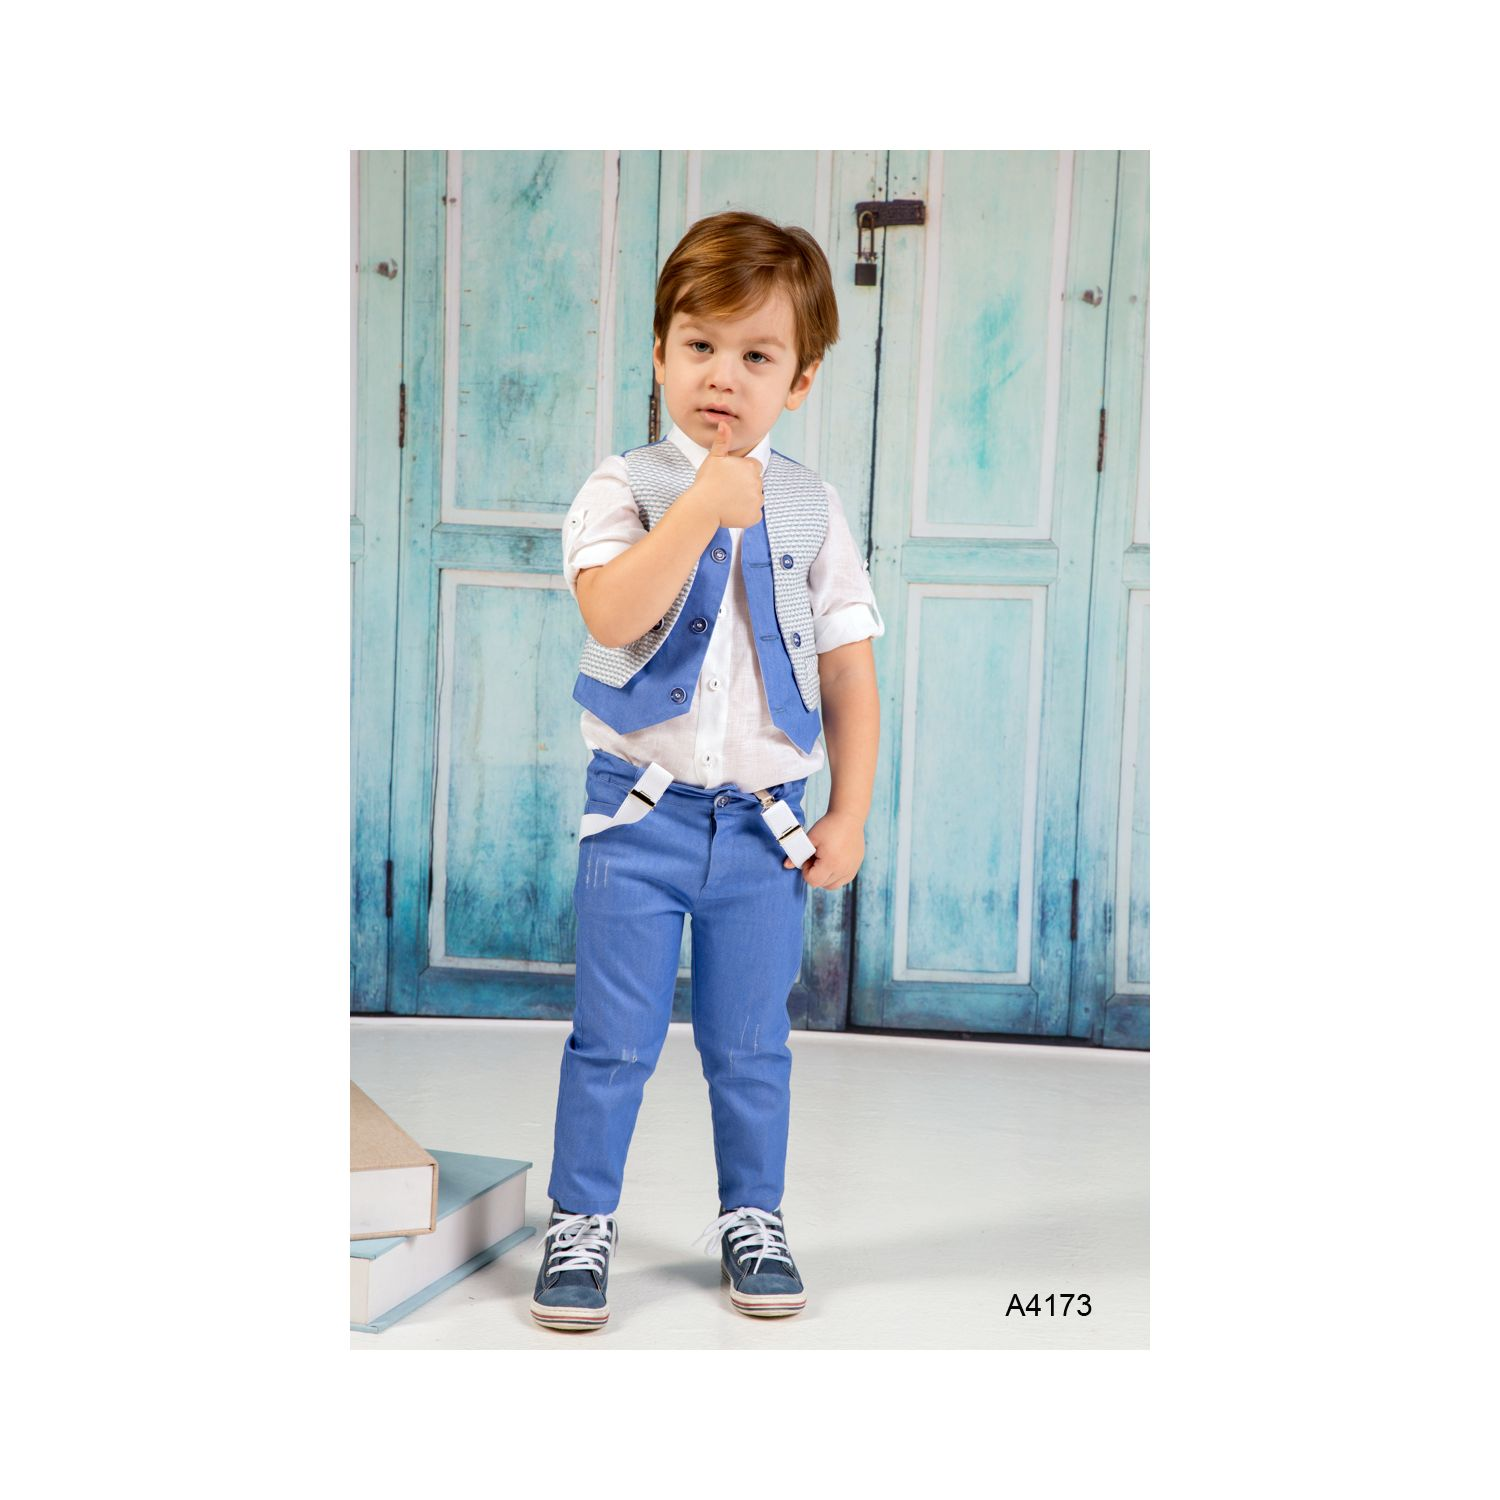 Greek christening clothes for boys A4173